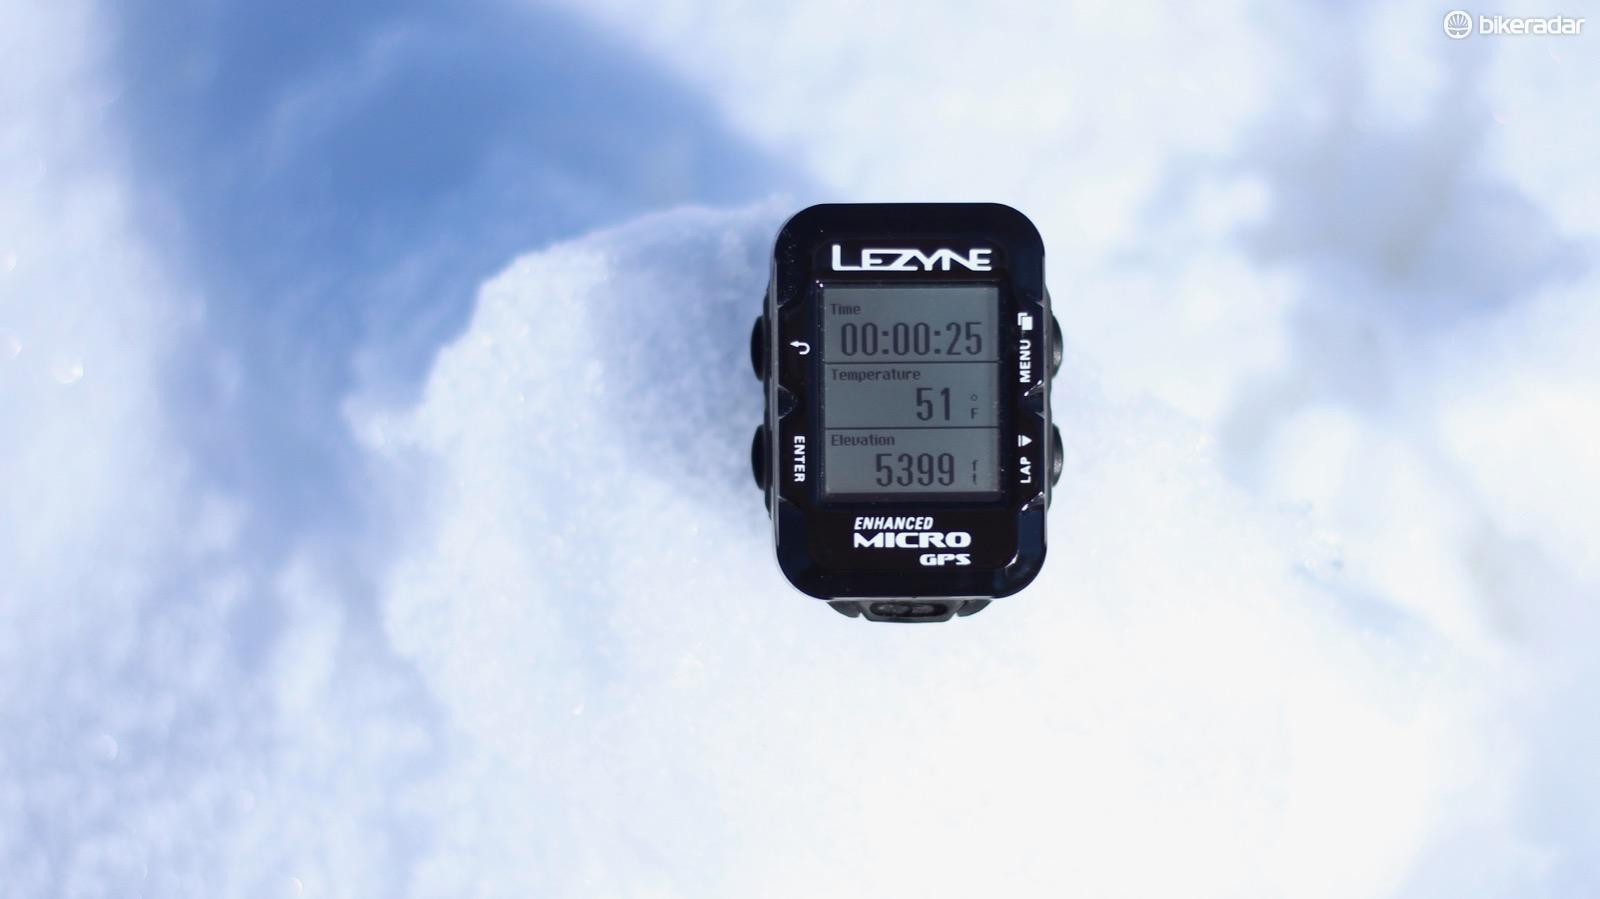 Lezyne packs an impressive amount of features into the Micro GPS